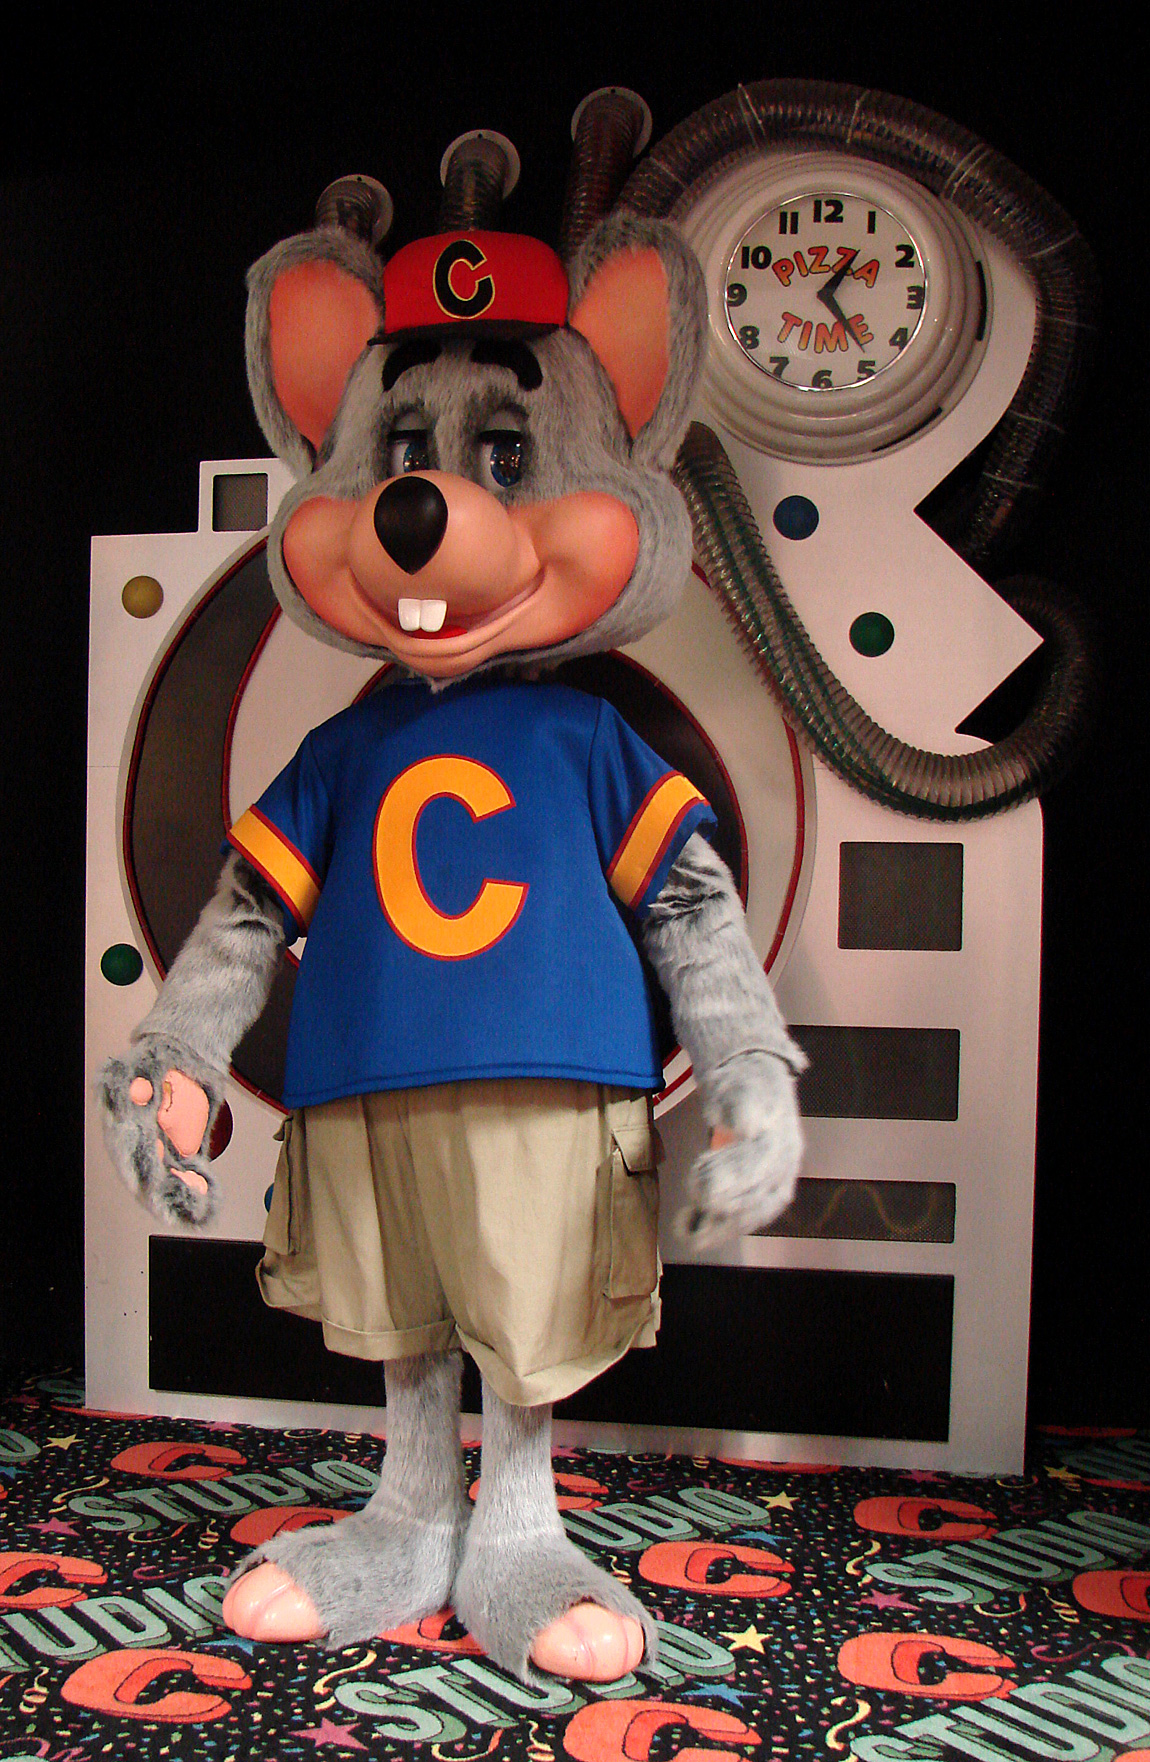 Find great deals on eBay for chuck e cheese. Shop with confidence.